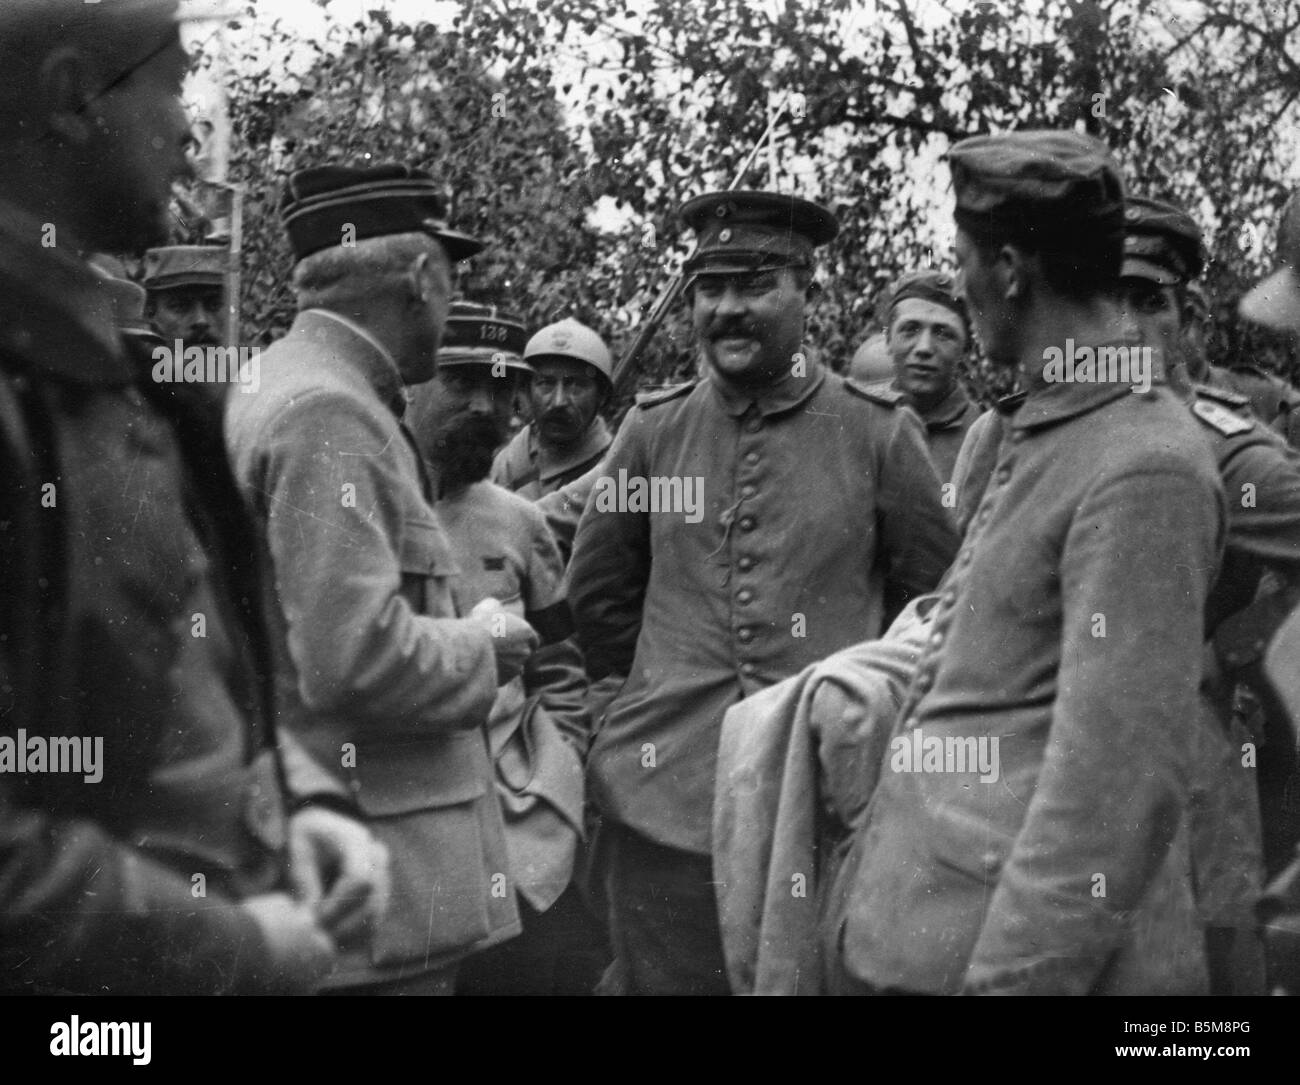 2 G55 K1 1915 13 German POWs questioned WWI 1915 History World War I Prisoners of war German soldiers are interrogated - Stock Image